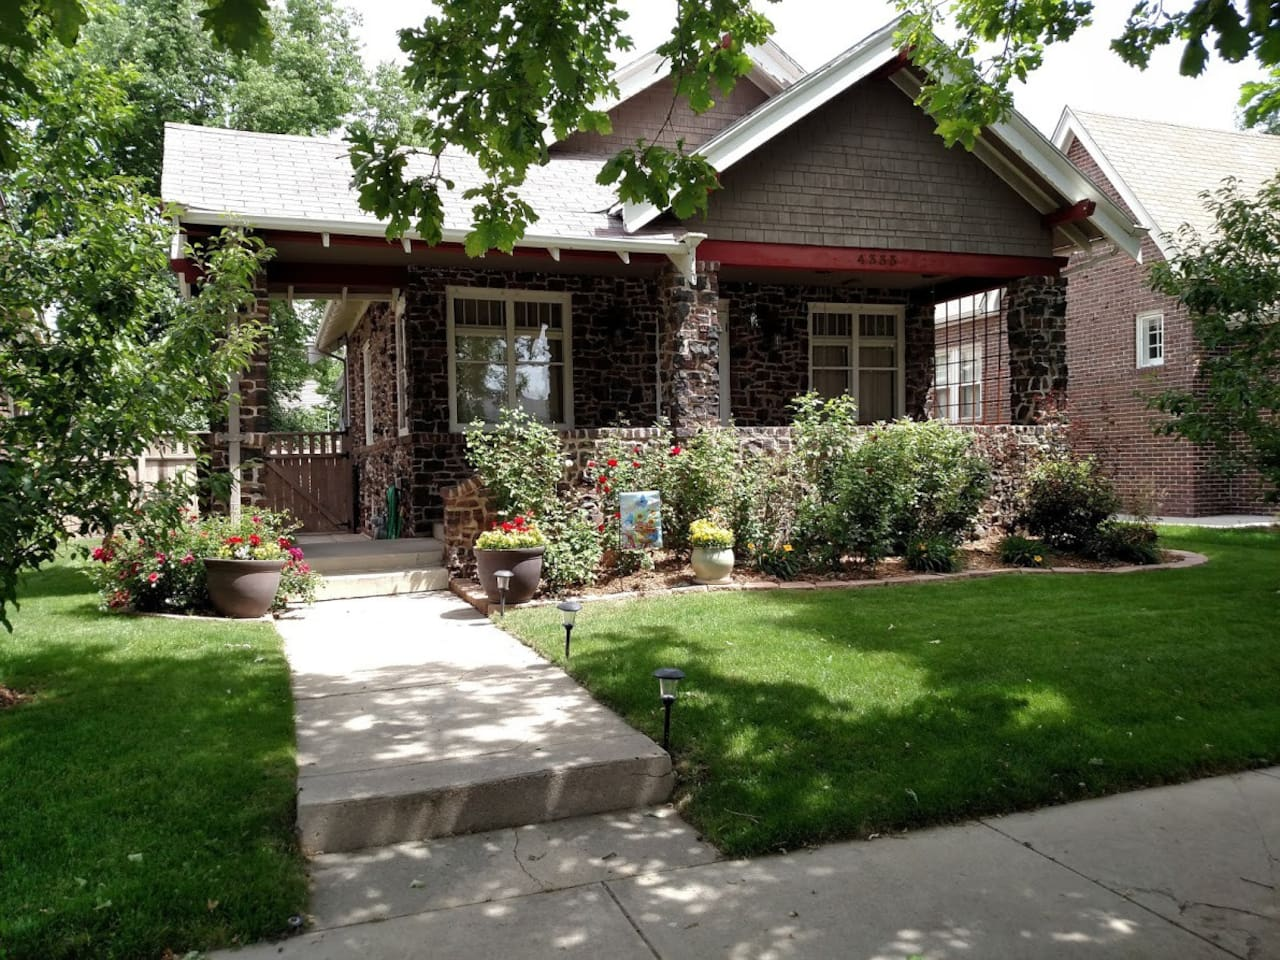 We are located in a amazing area-- 2 blocks (easy walk) from City park, Museum of Nature and Science, and the Zoo. We love to garden and be outdoors!